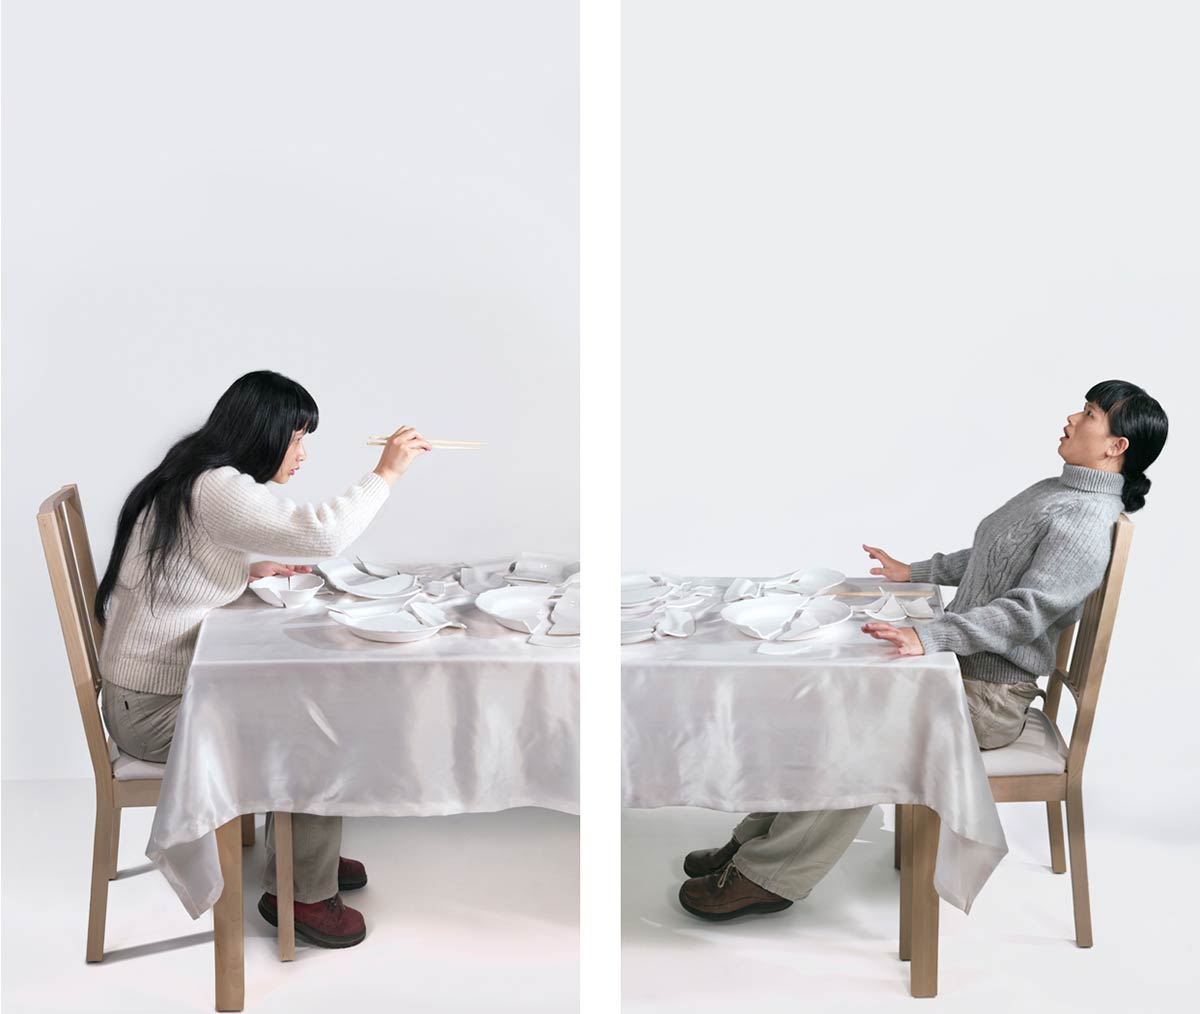 Chun Hua Catherine Dong uses her body to play a couple in domestic lives: she wears the husband's clothing to present his presence. wife is left and husband is right.